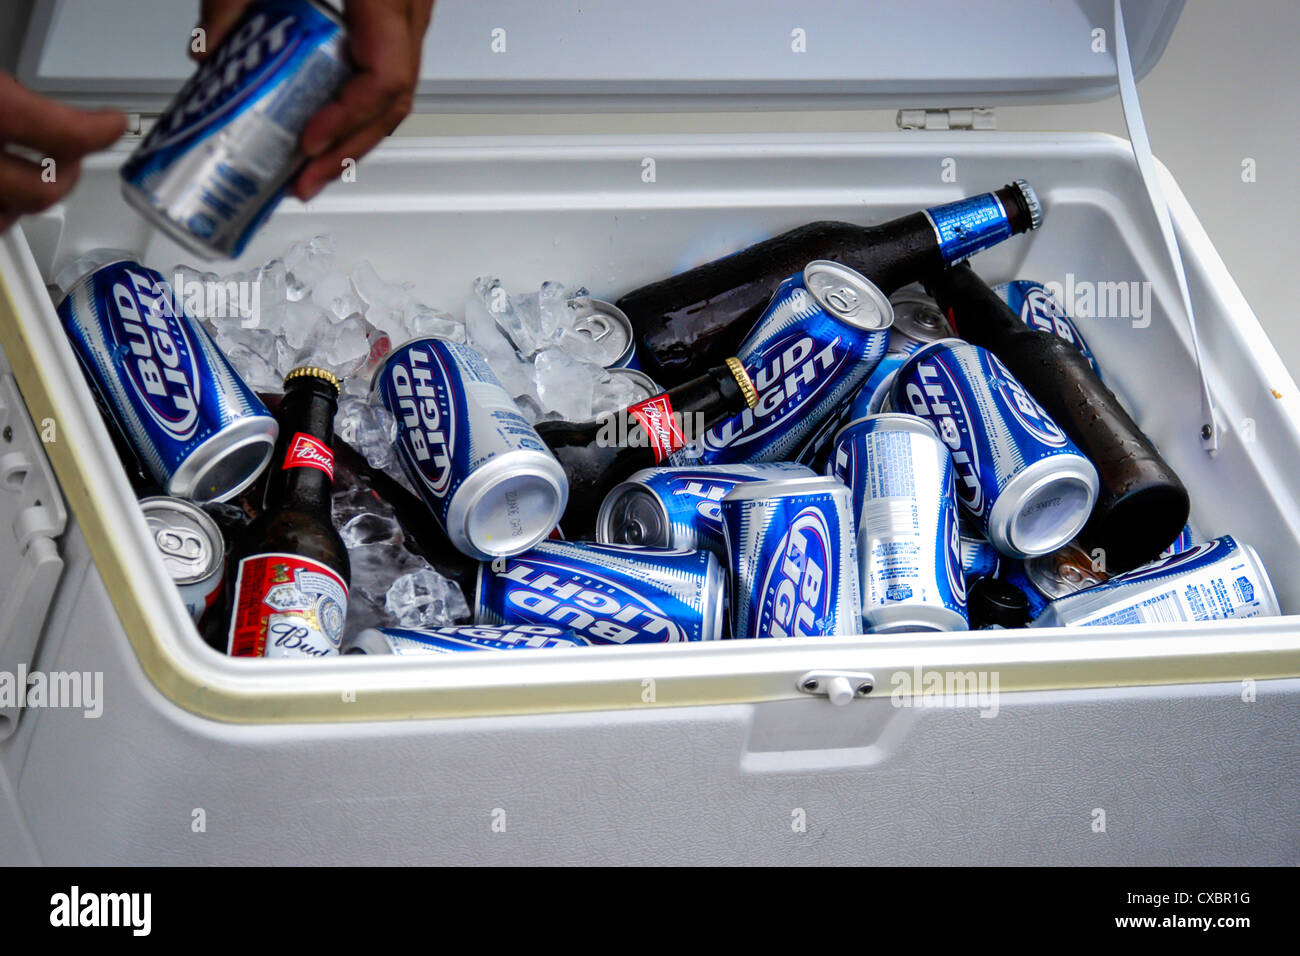 Tins and bottles of beer in an cooler box. - Stock Image